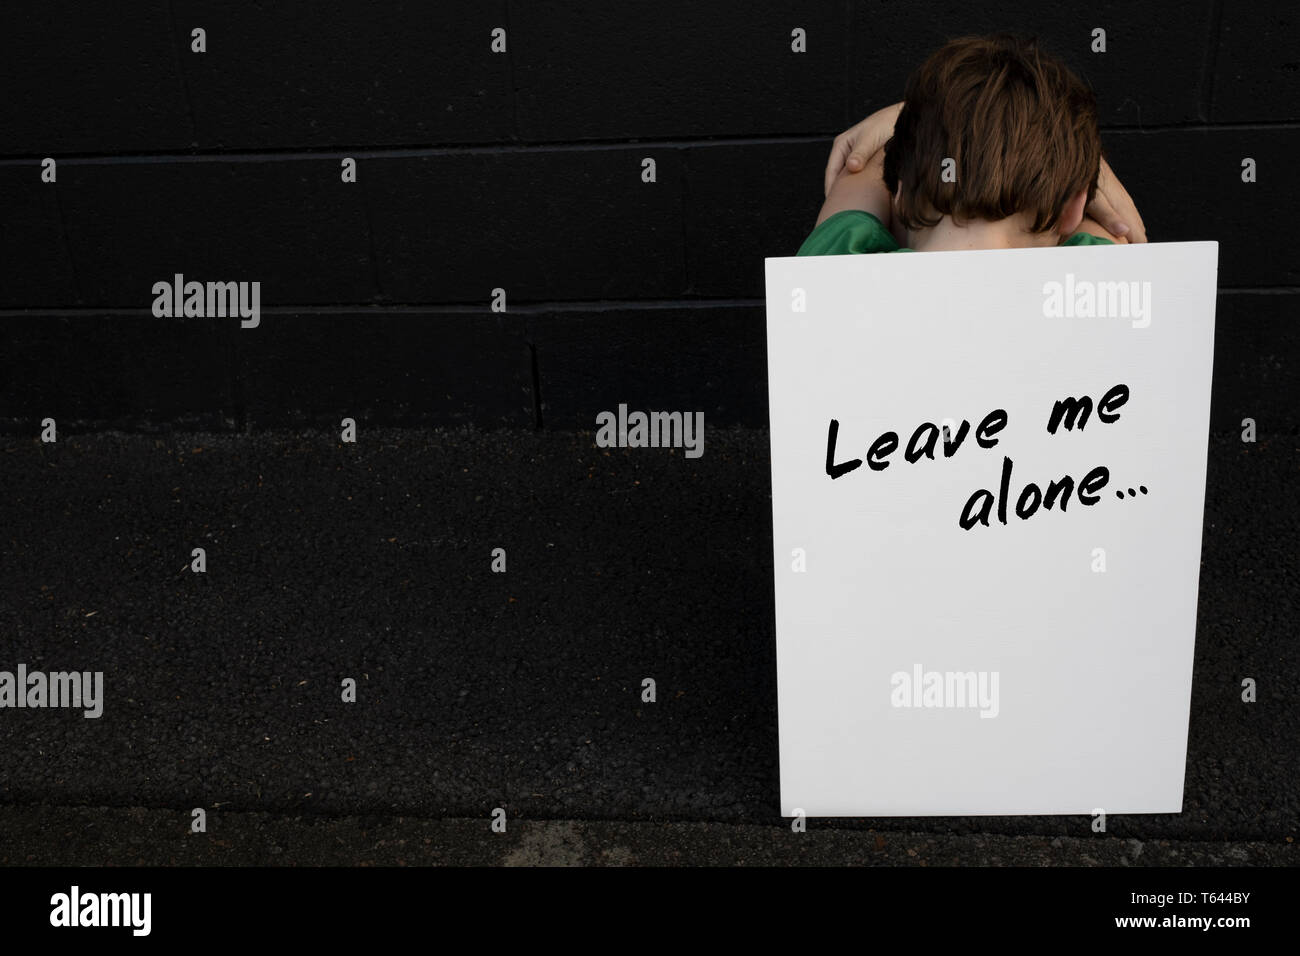 A boy holding a sign, expressing his feelings - Stock Image